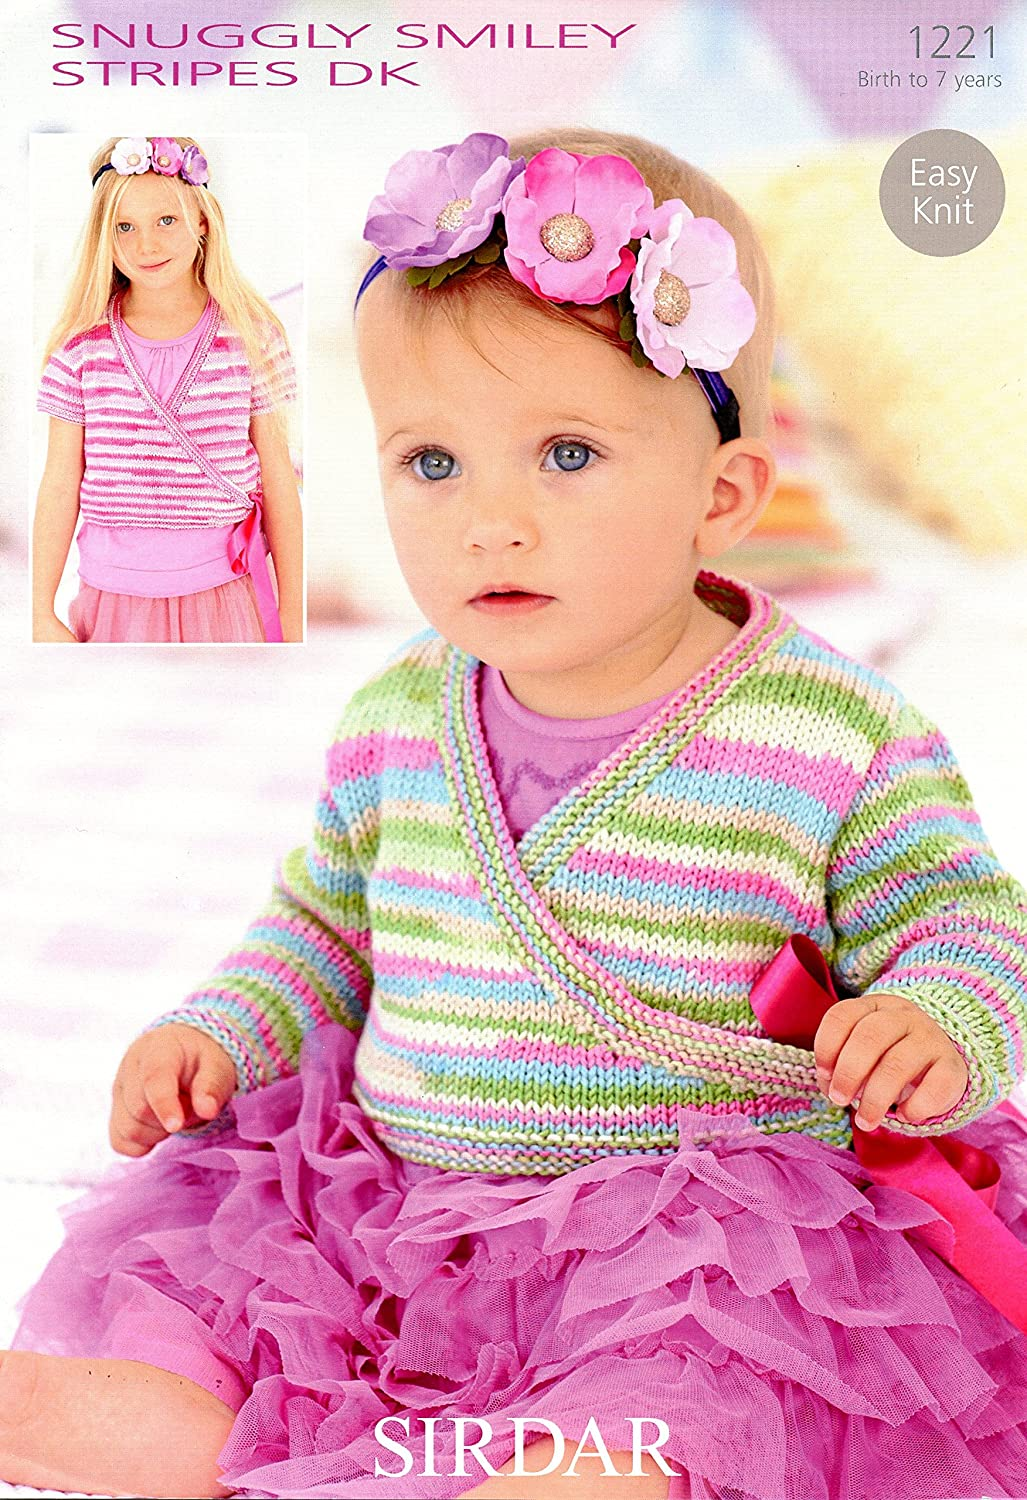 Amazon Com Easy Knit Ballet Cardigans In Snuggly Smiley Stripes Dk